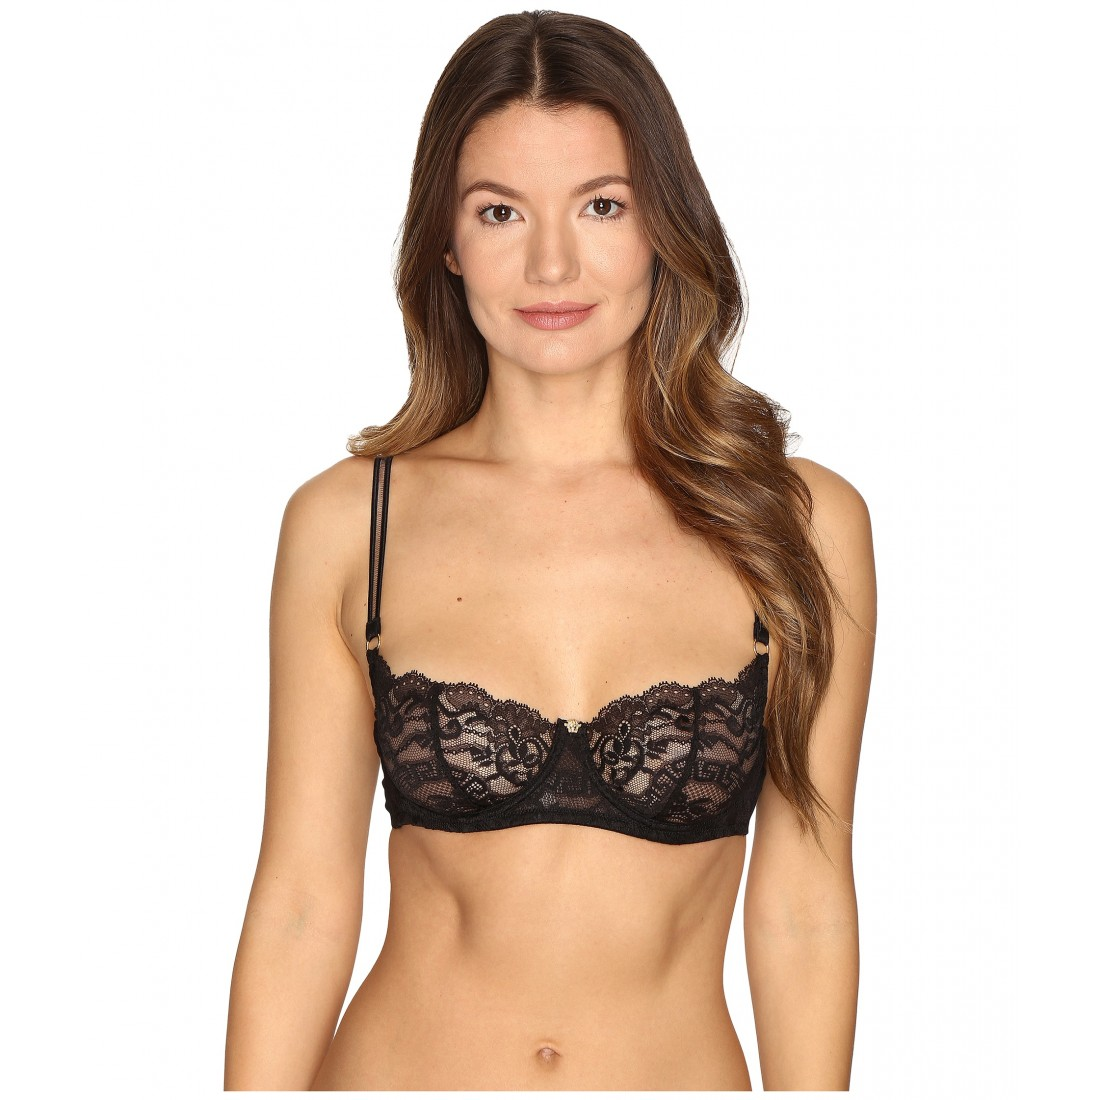 The New Bra Drop FW18 Styles Have Landed From sexy to seamless, make our newest bras of the season yours. Now offering sizes DDD in 32, 34, 38 and